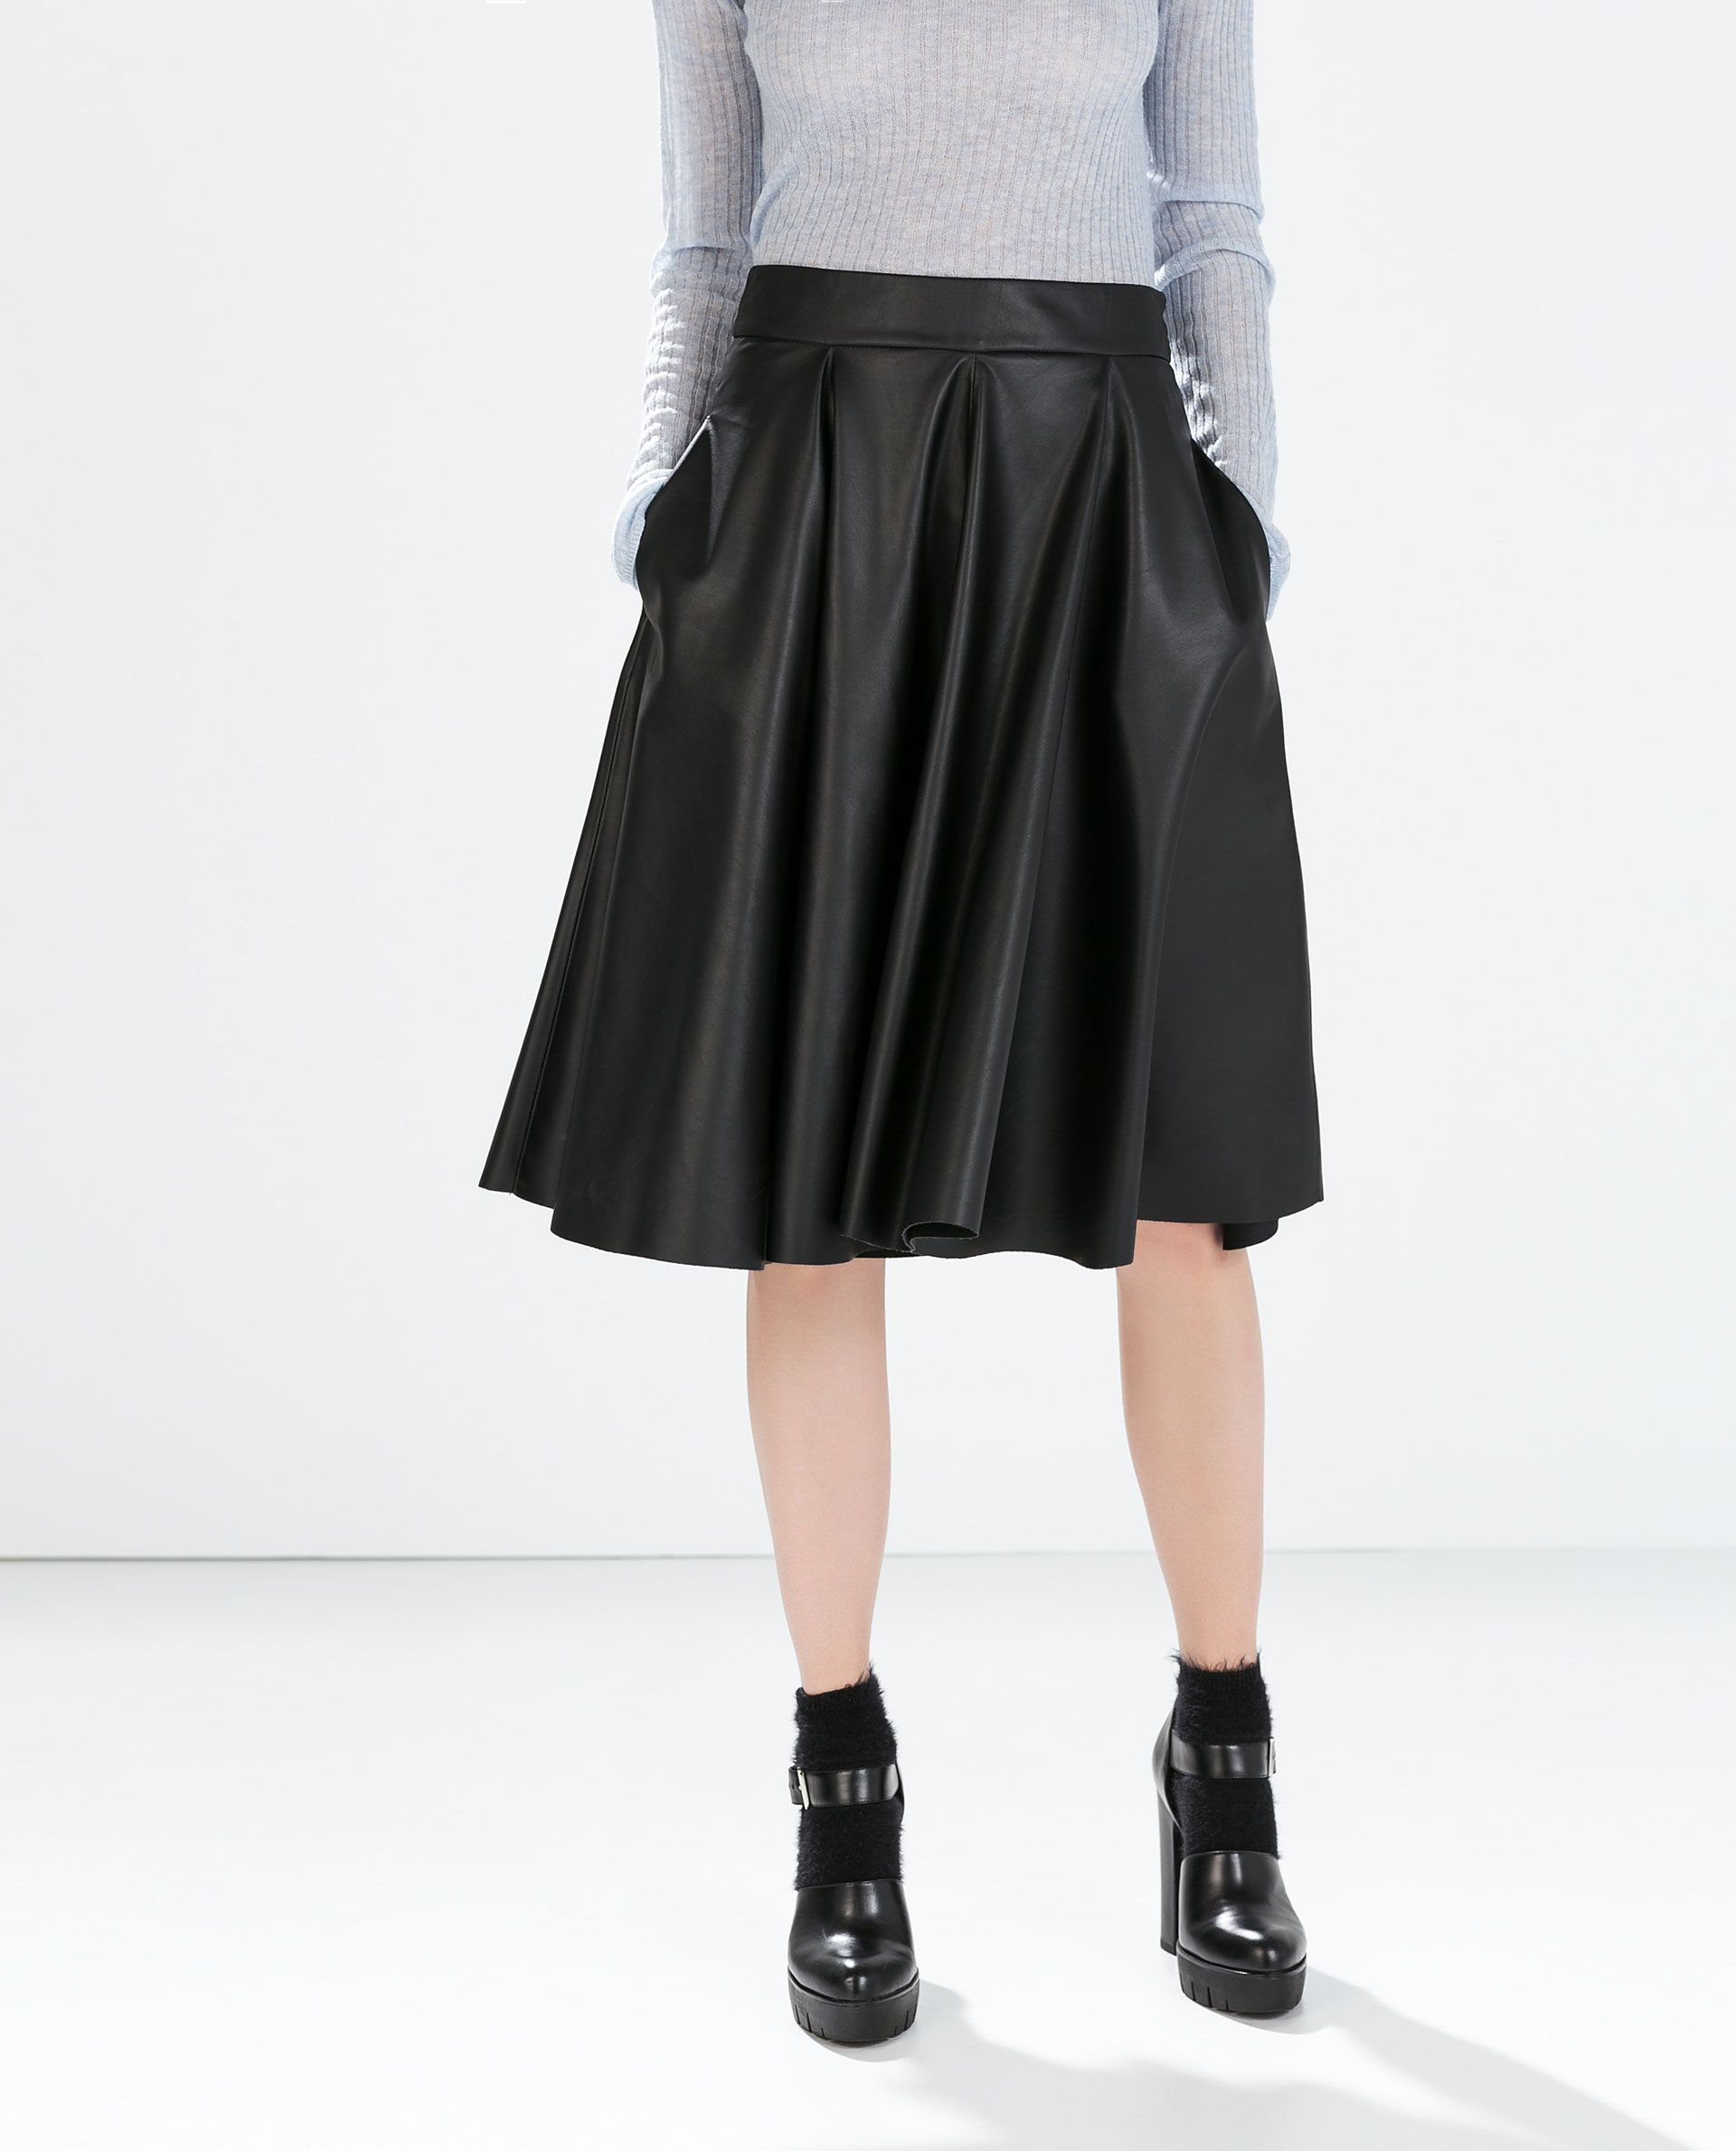 ad3c4ffda6 Image 2 of FAUX LEATHER SKIRT from Zara | My Style | Faux leather ...